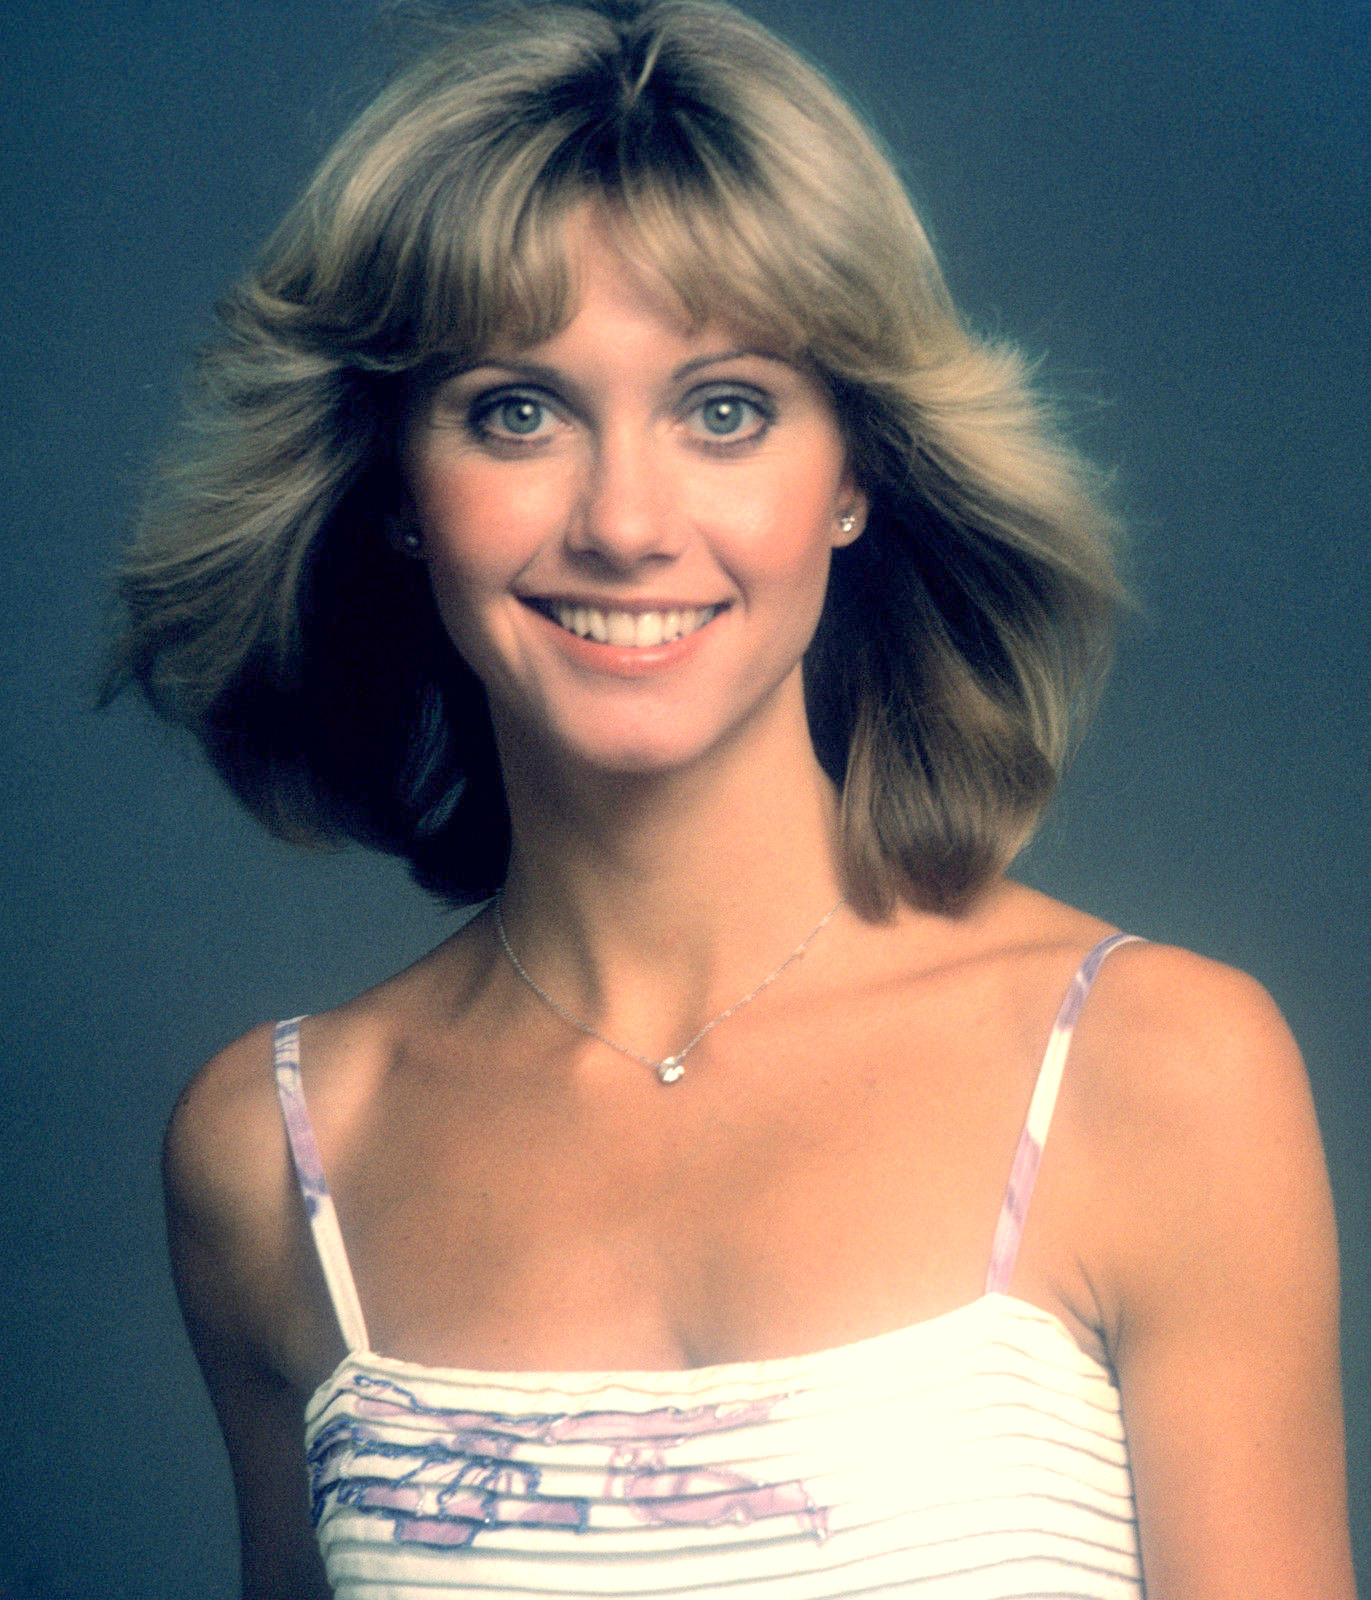 nude photos of the olivia newton john